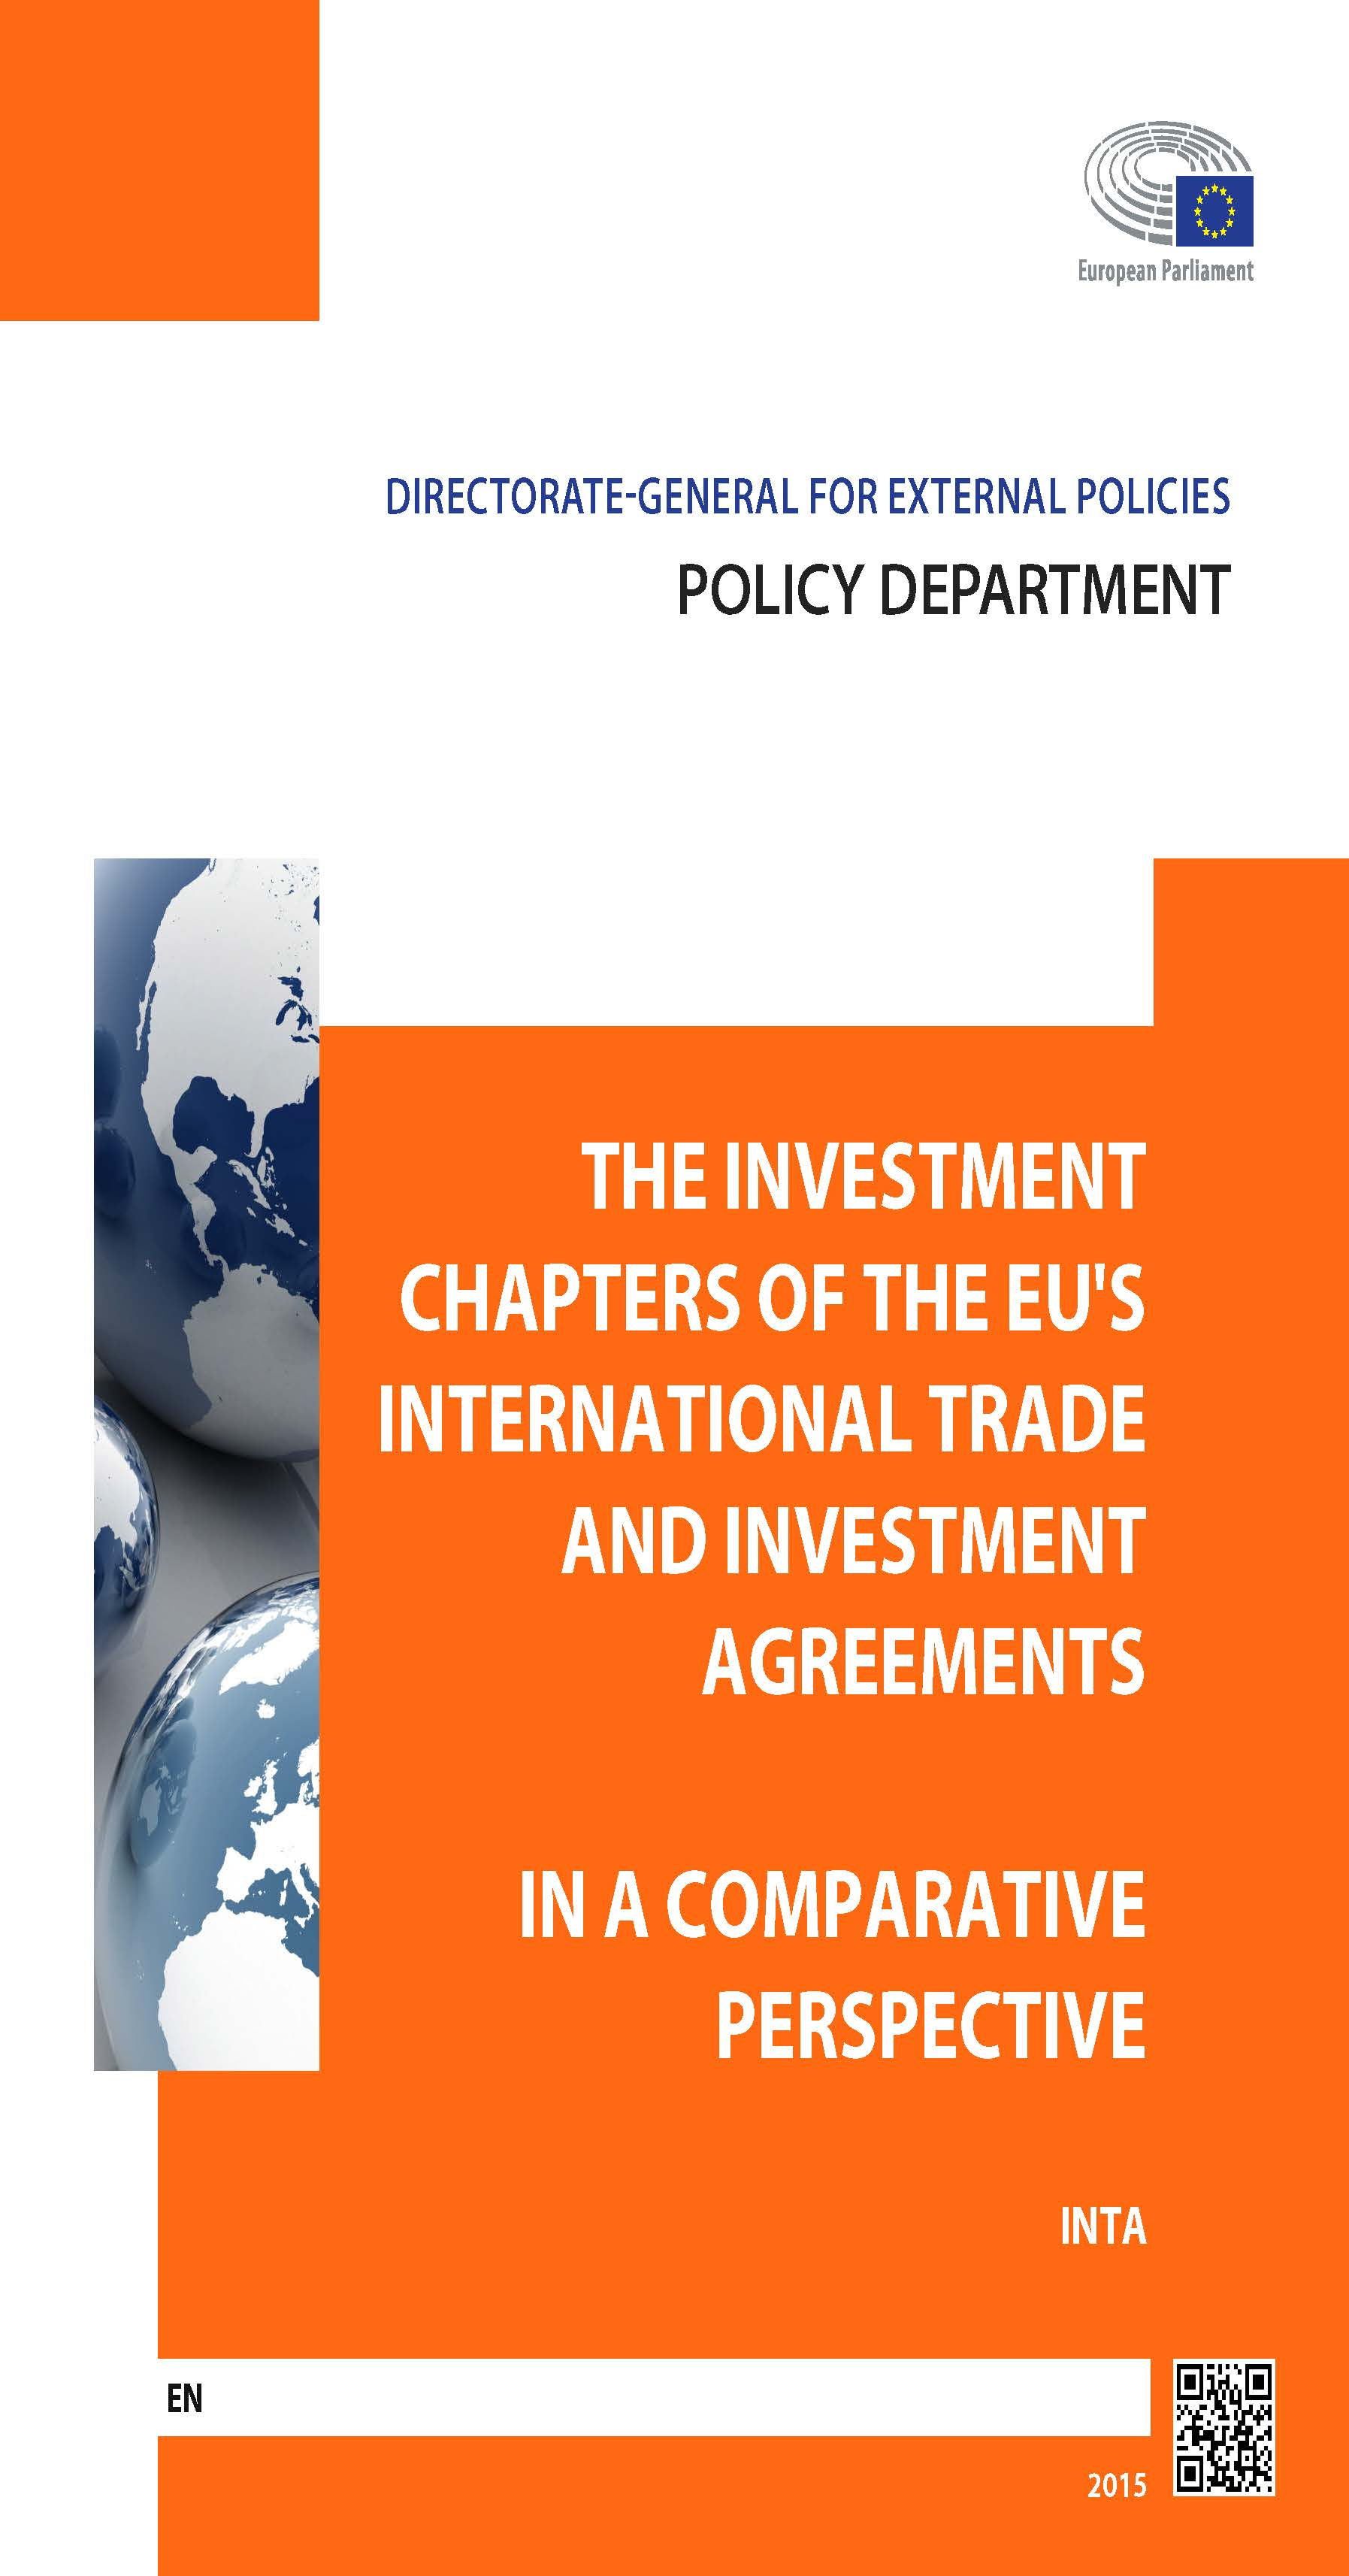 The Investment Chapters of the EU's International Trade and Investment Agreements in a Comparative Perspective